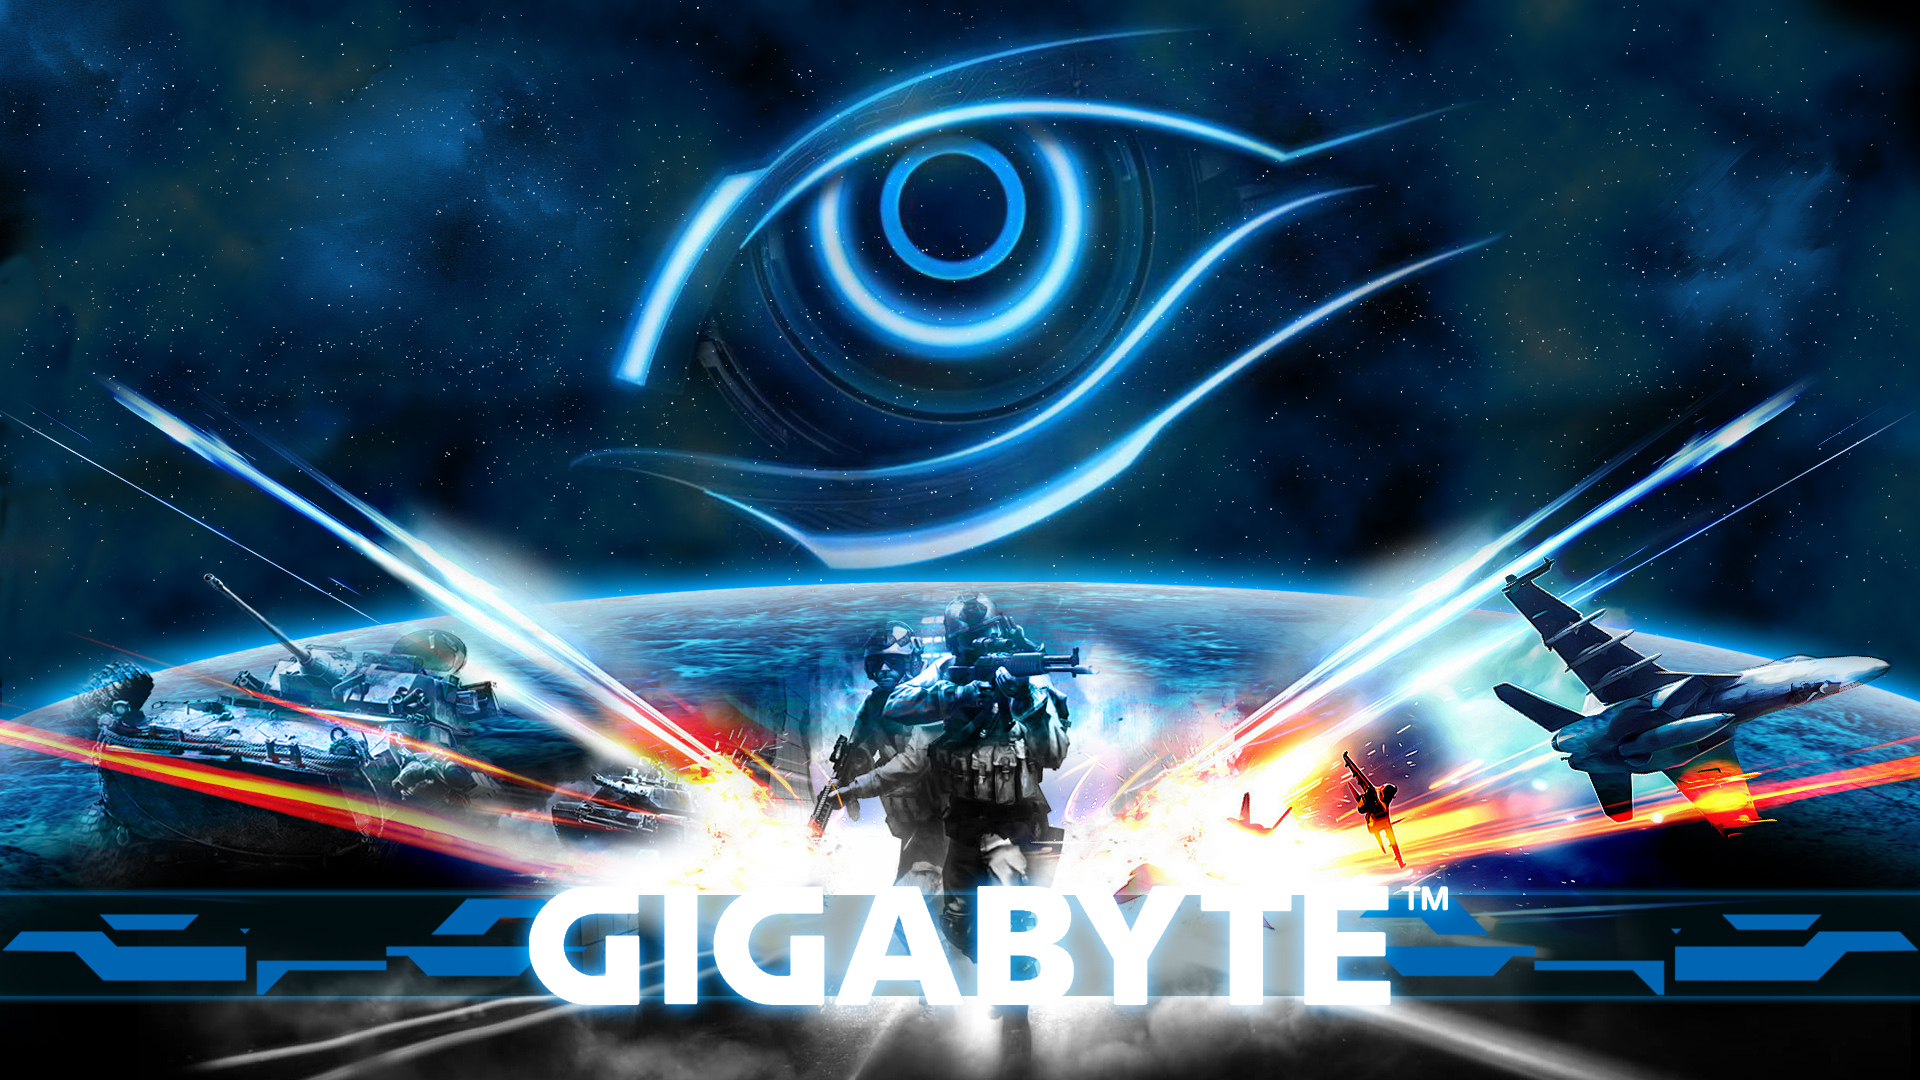 Gigabyte Wallpaper